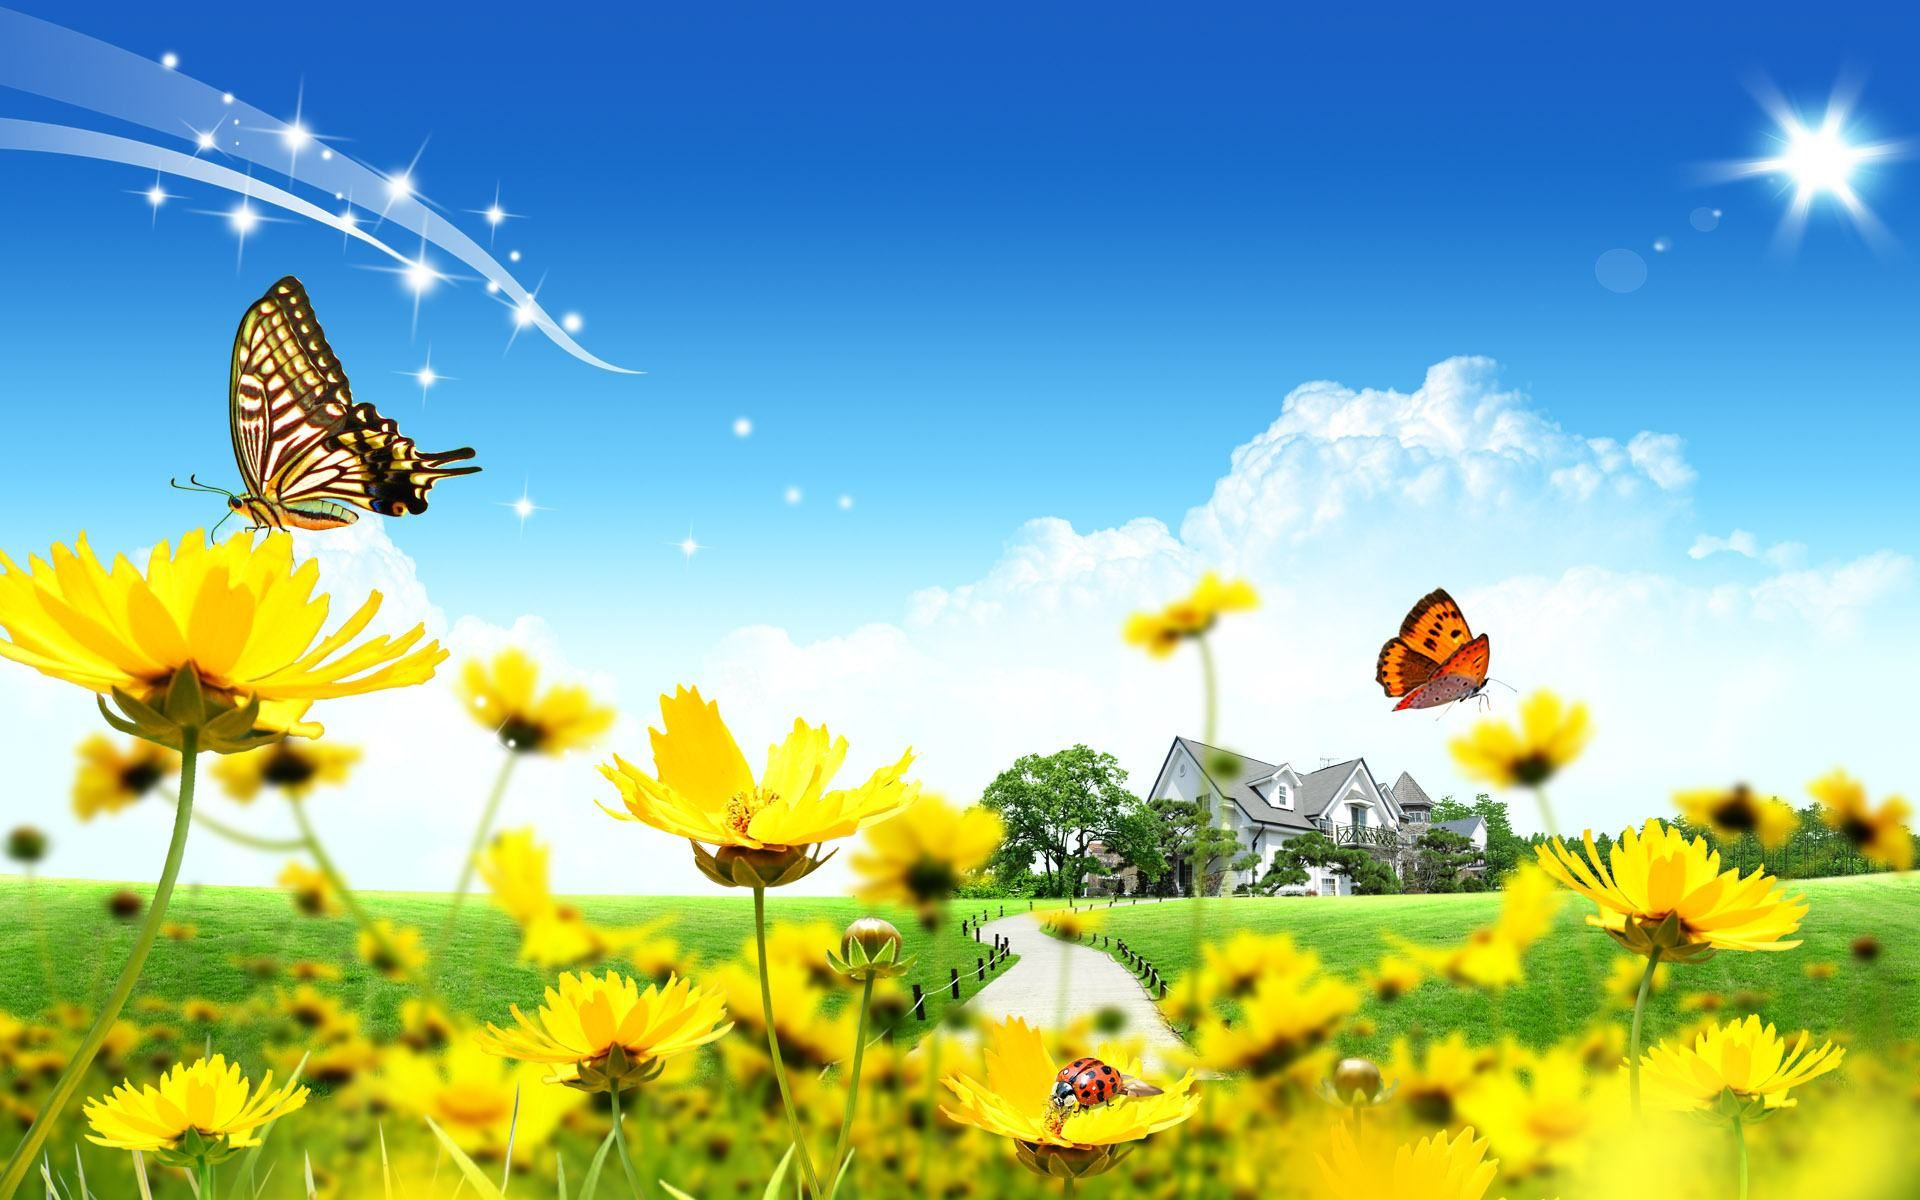 Sunny Day Wallpaper 12570 Beautiful flowers wallpapers 1920x1200